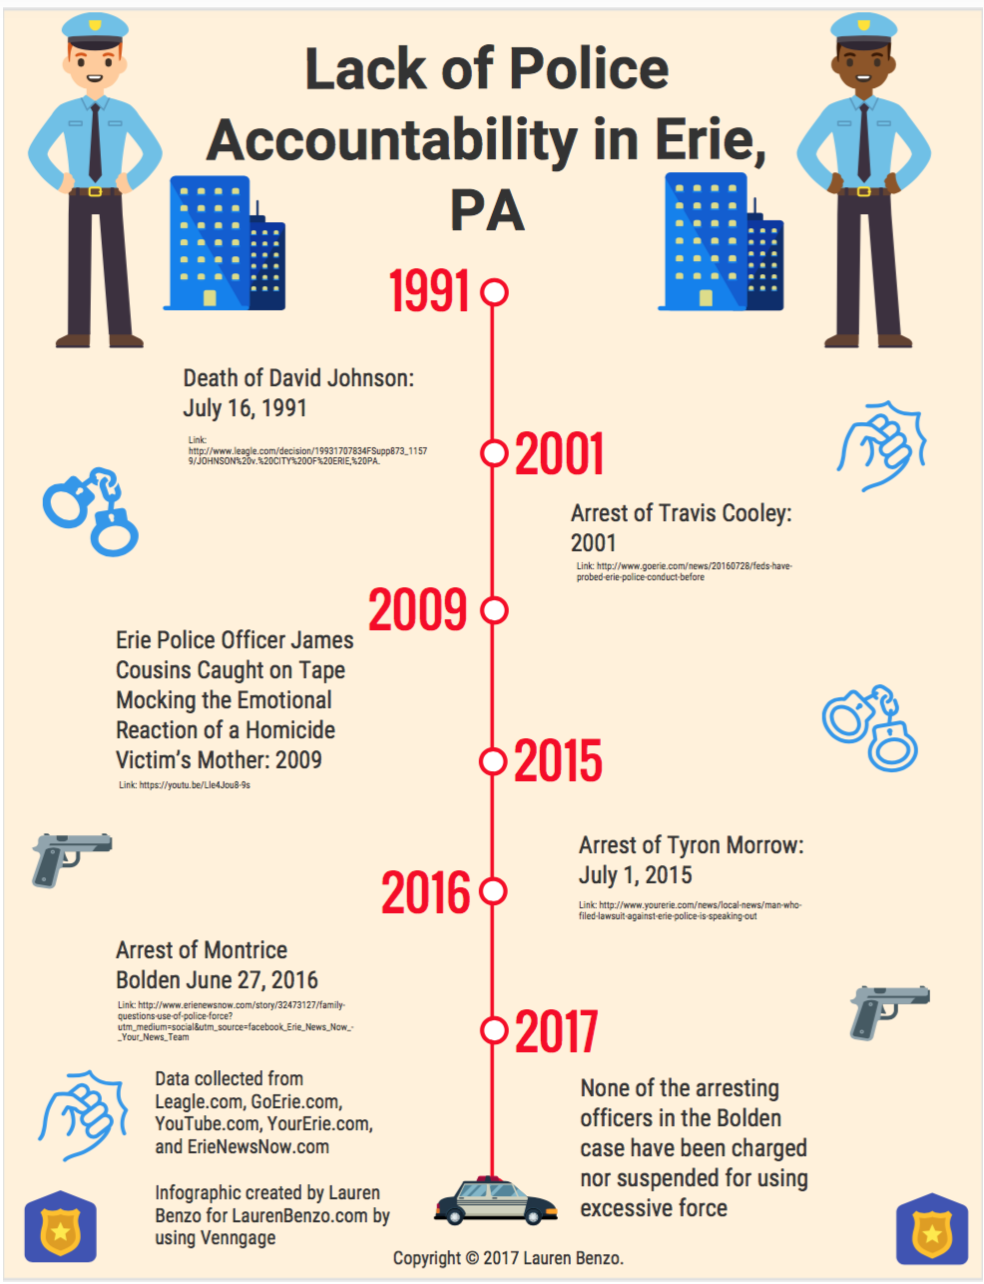 Timeline on the Lack of Police Accountability in Erie, PA